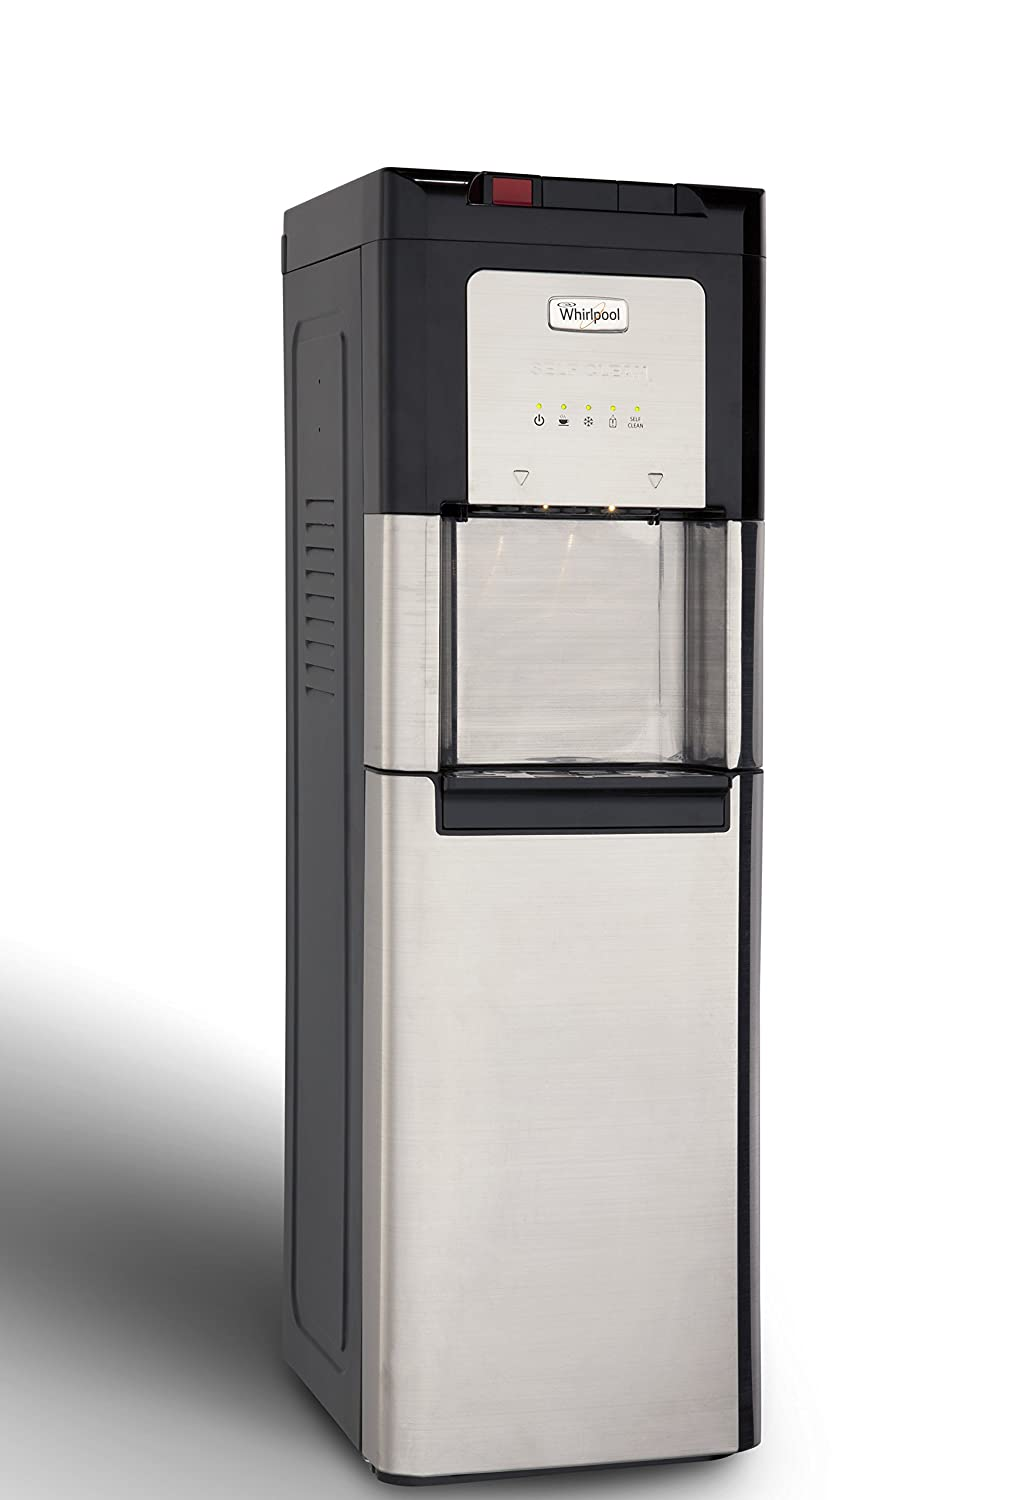 Whirlpool 8LIECH-SC-SSF-P5W Self-cleaning Water Cooler